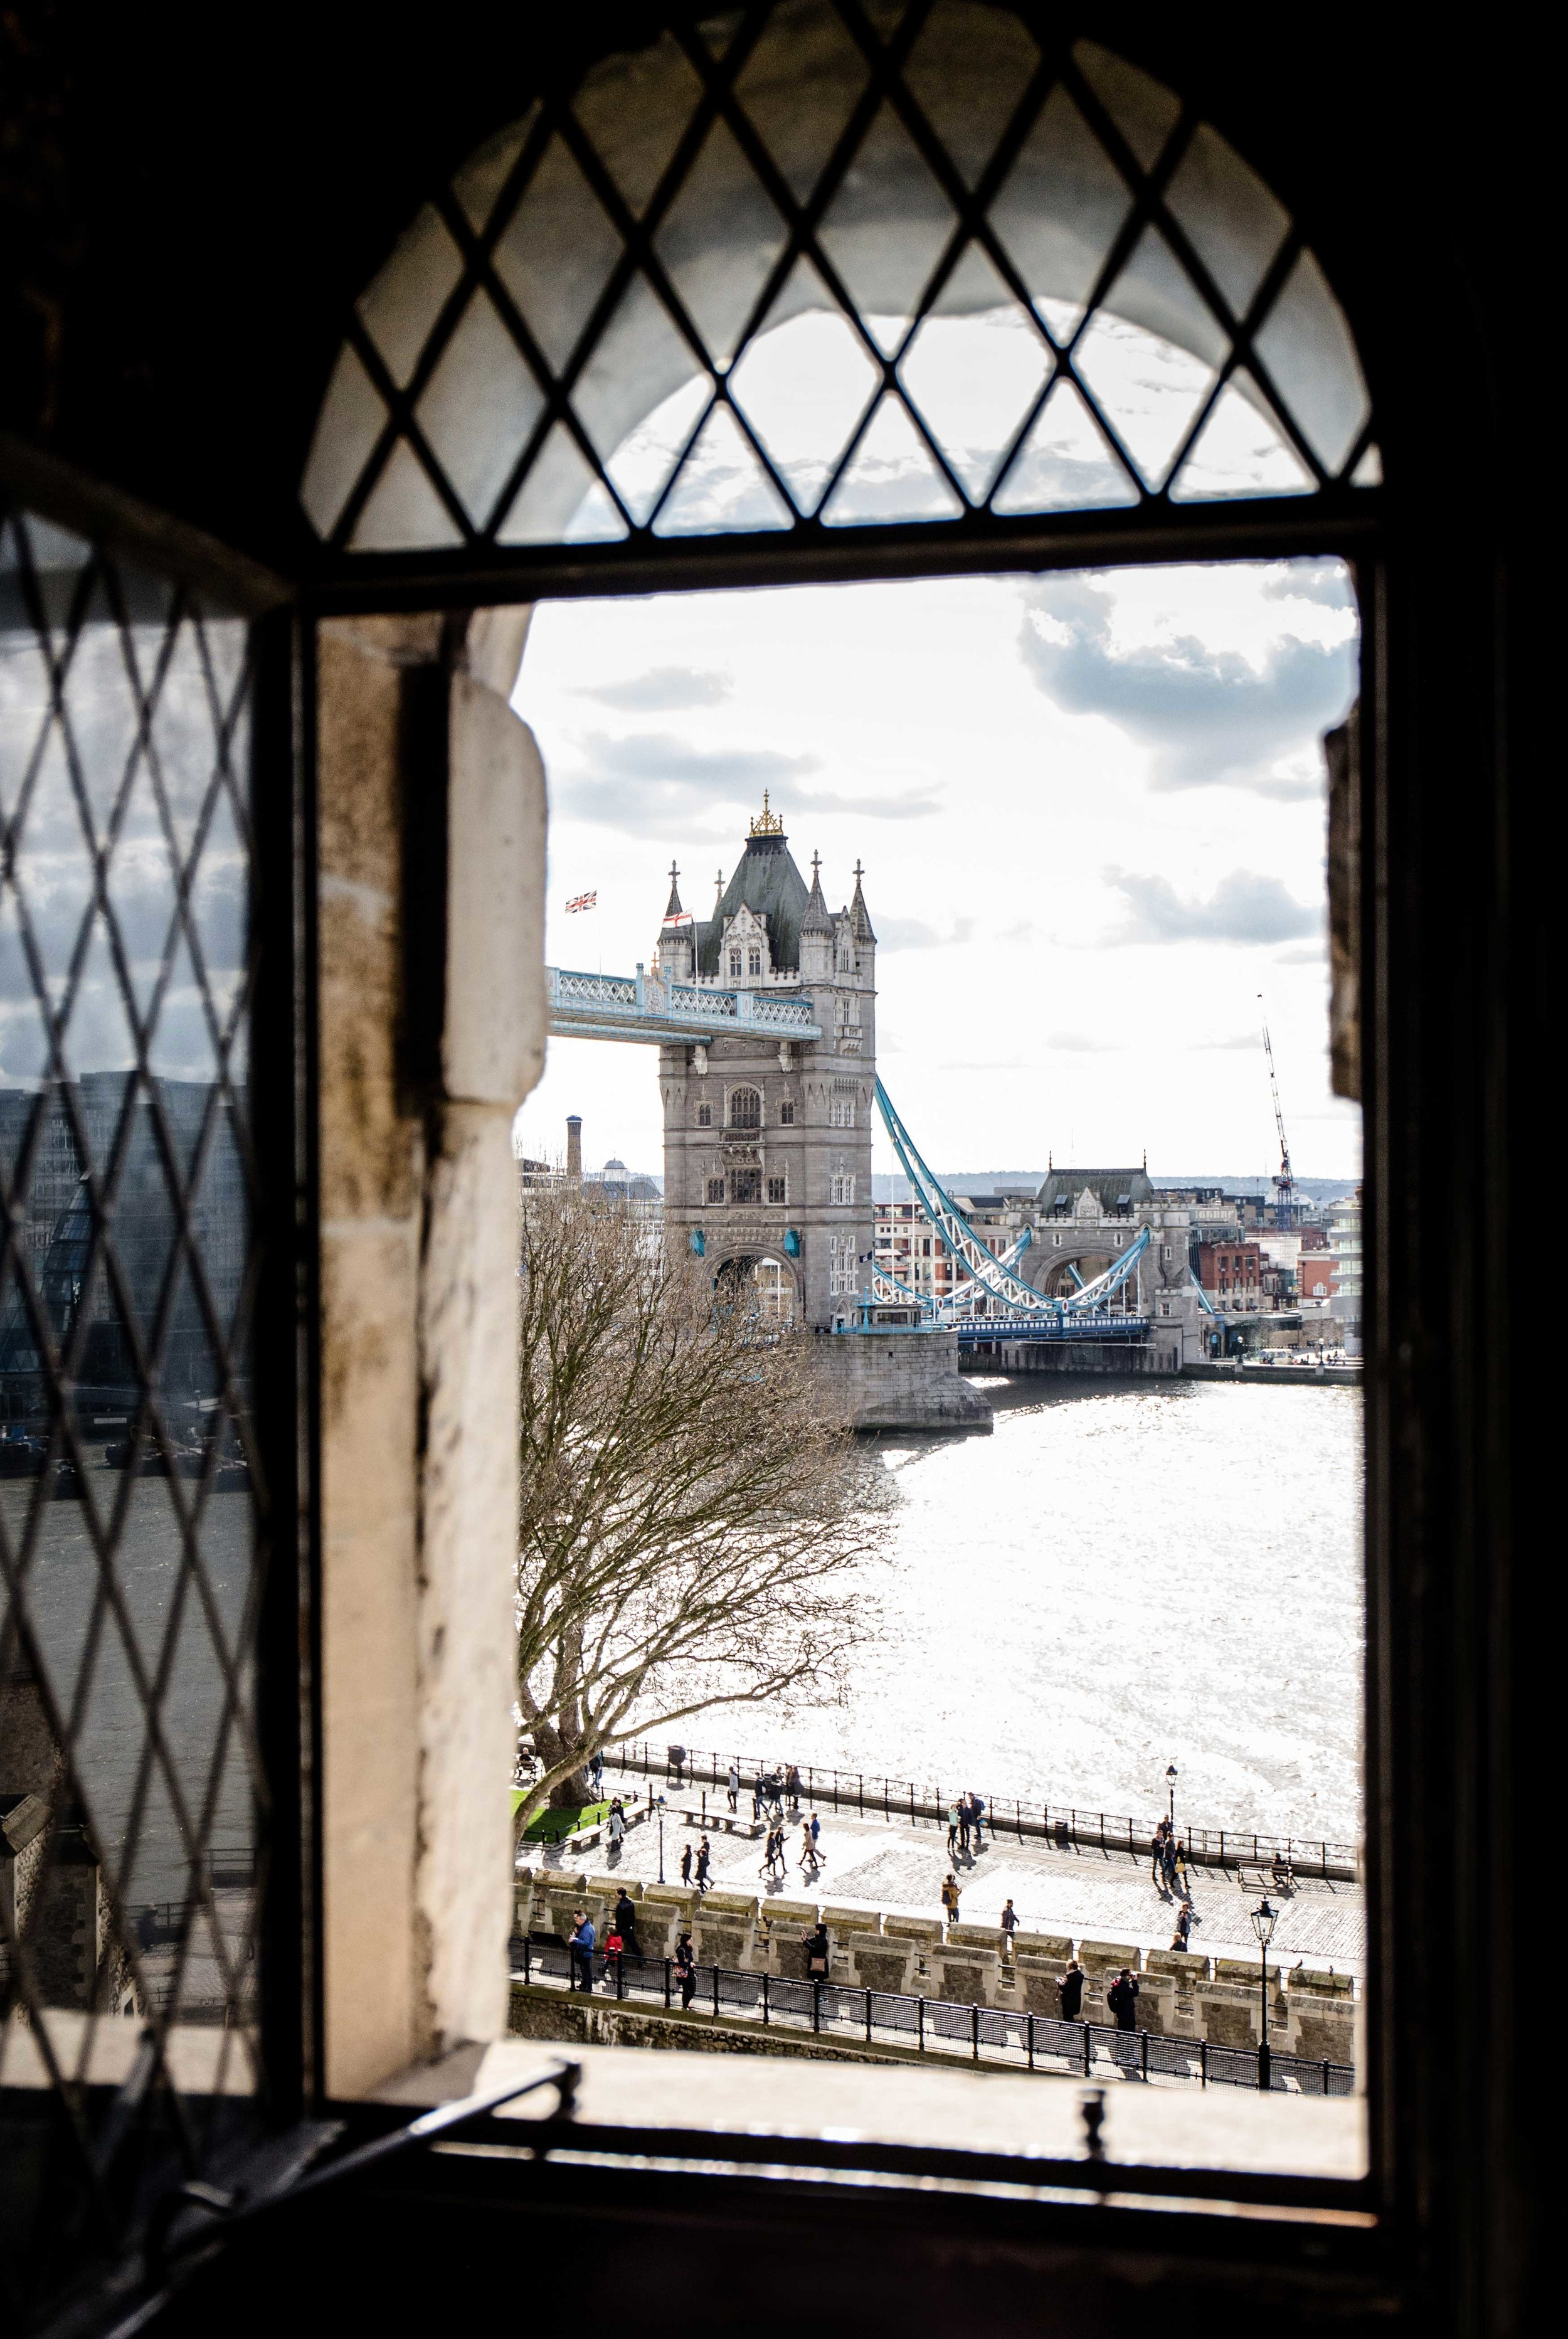 View of the Tower Bridge in London from the Tower of London